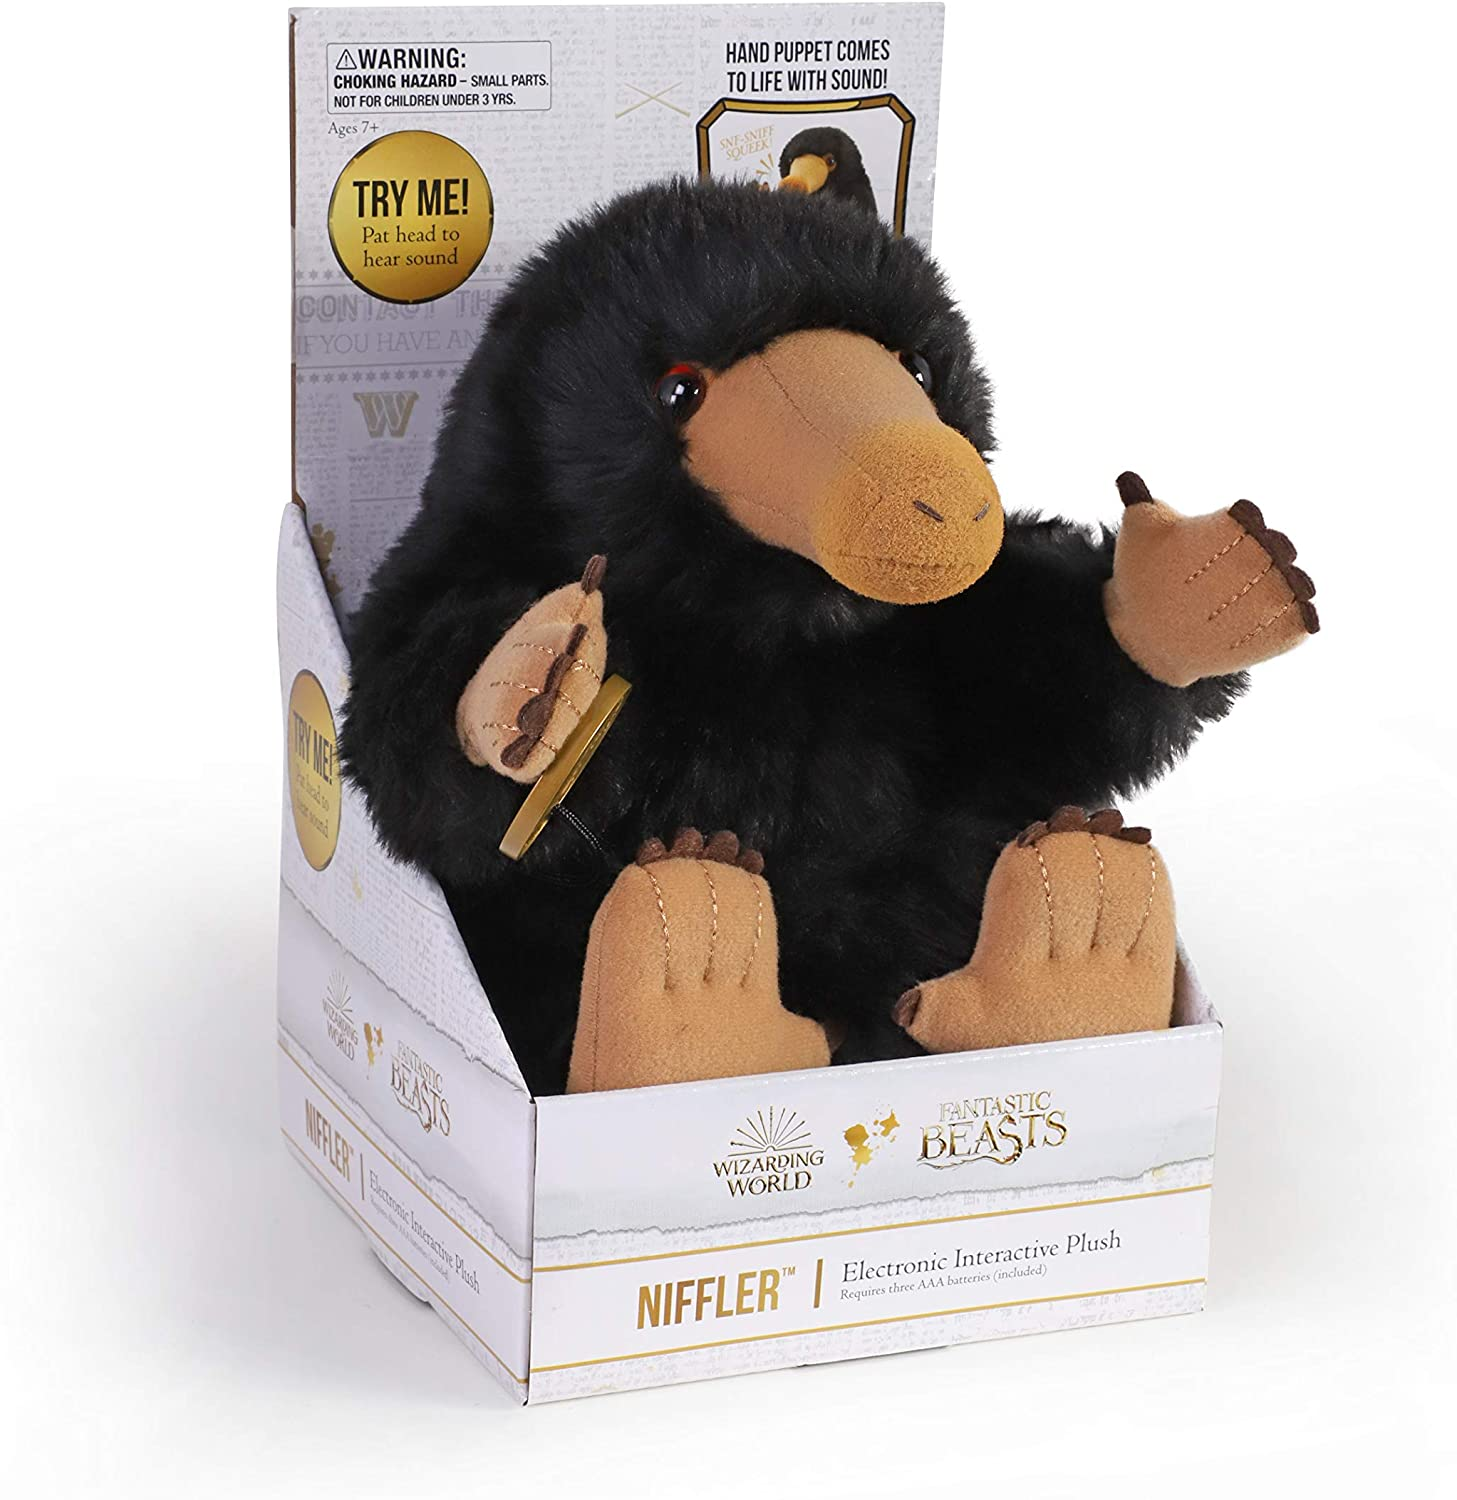 The Noble Collection Niffler️ Electronic Interactive Plush Puppet